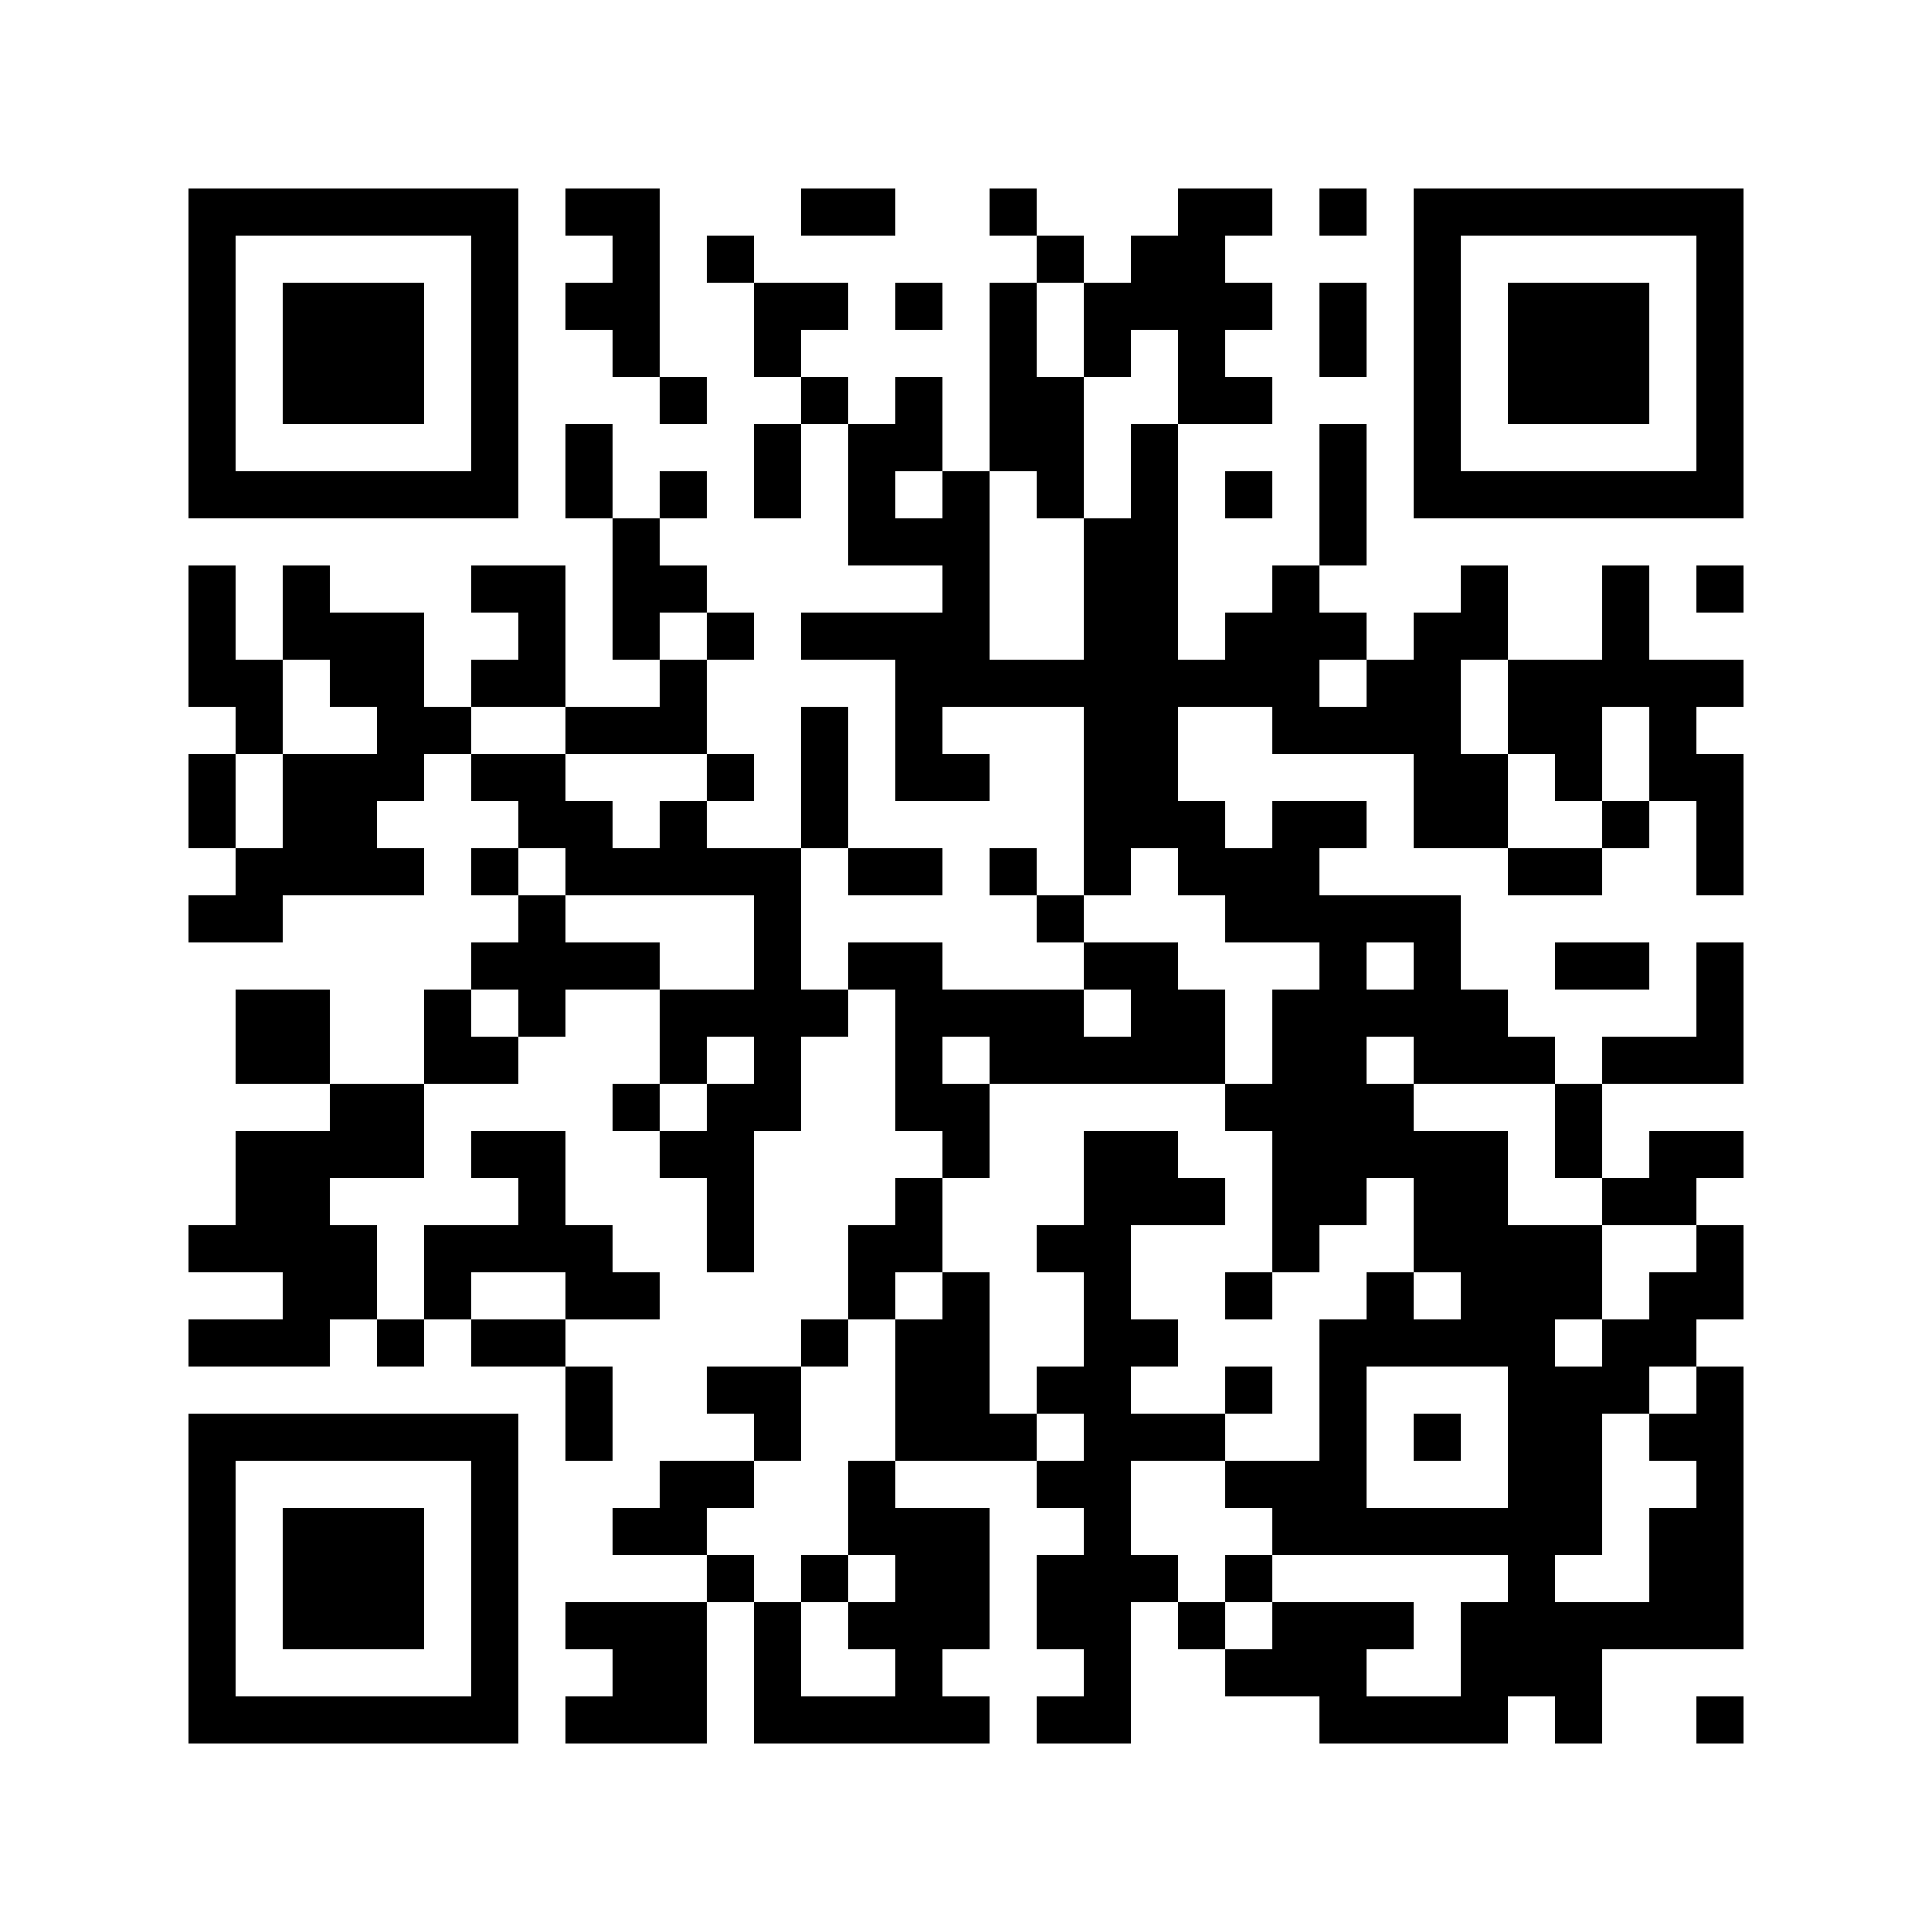 make a QR Code for your url, address etc